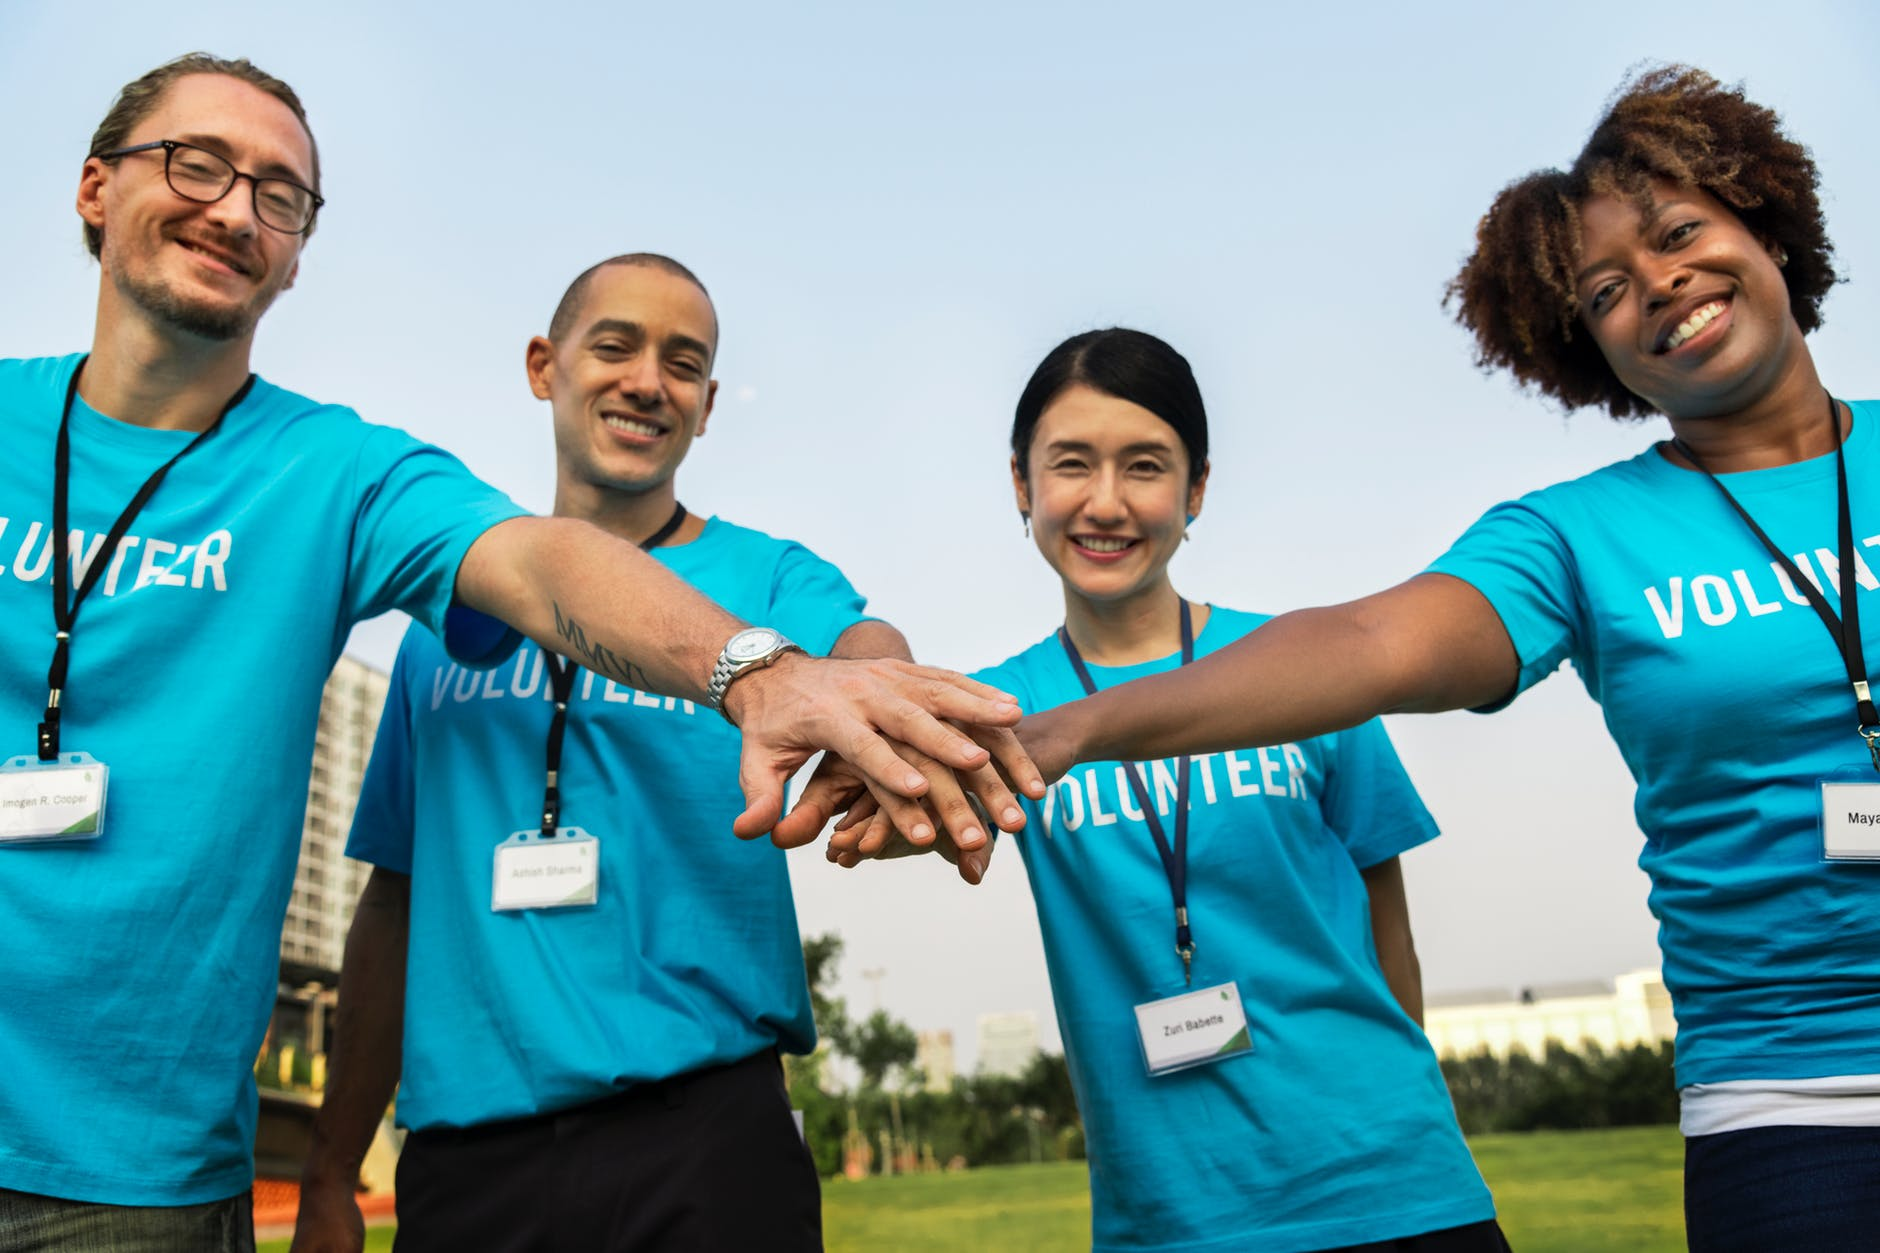 group of volunteer doing a teamwork gesture